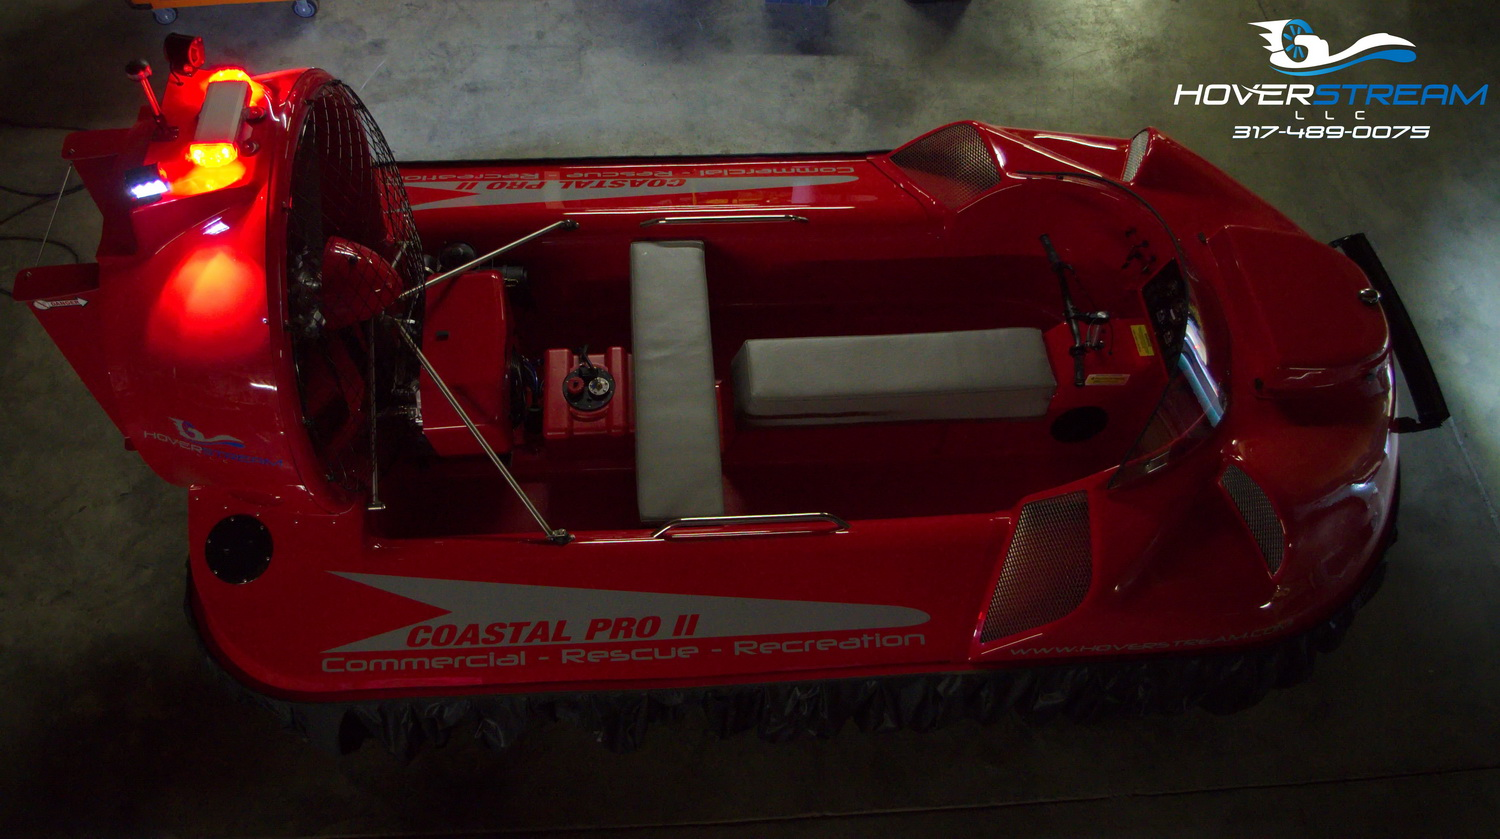 Coastal Pro 2 Basic Rescue package